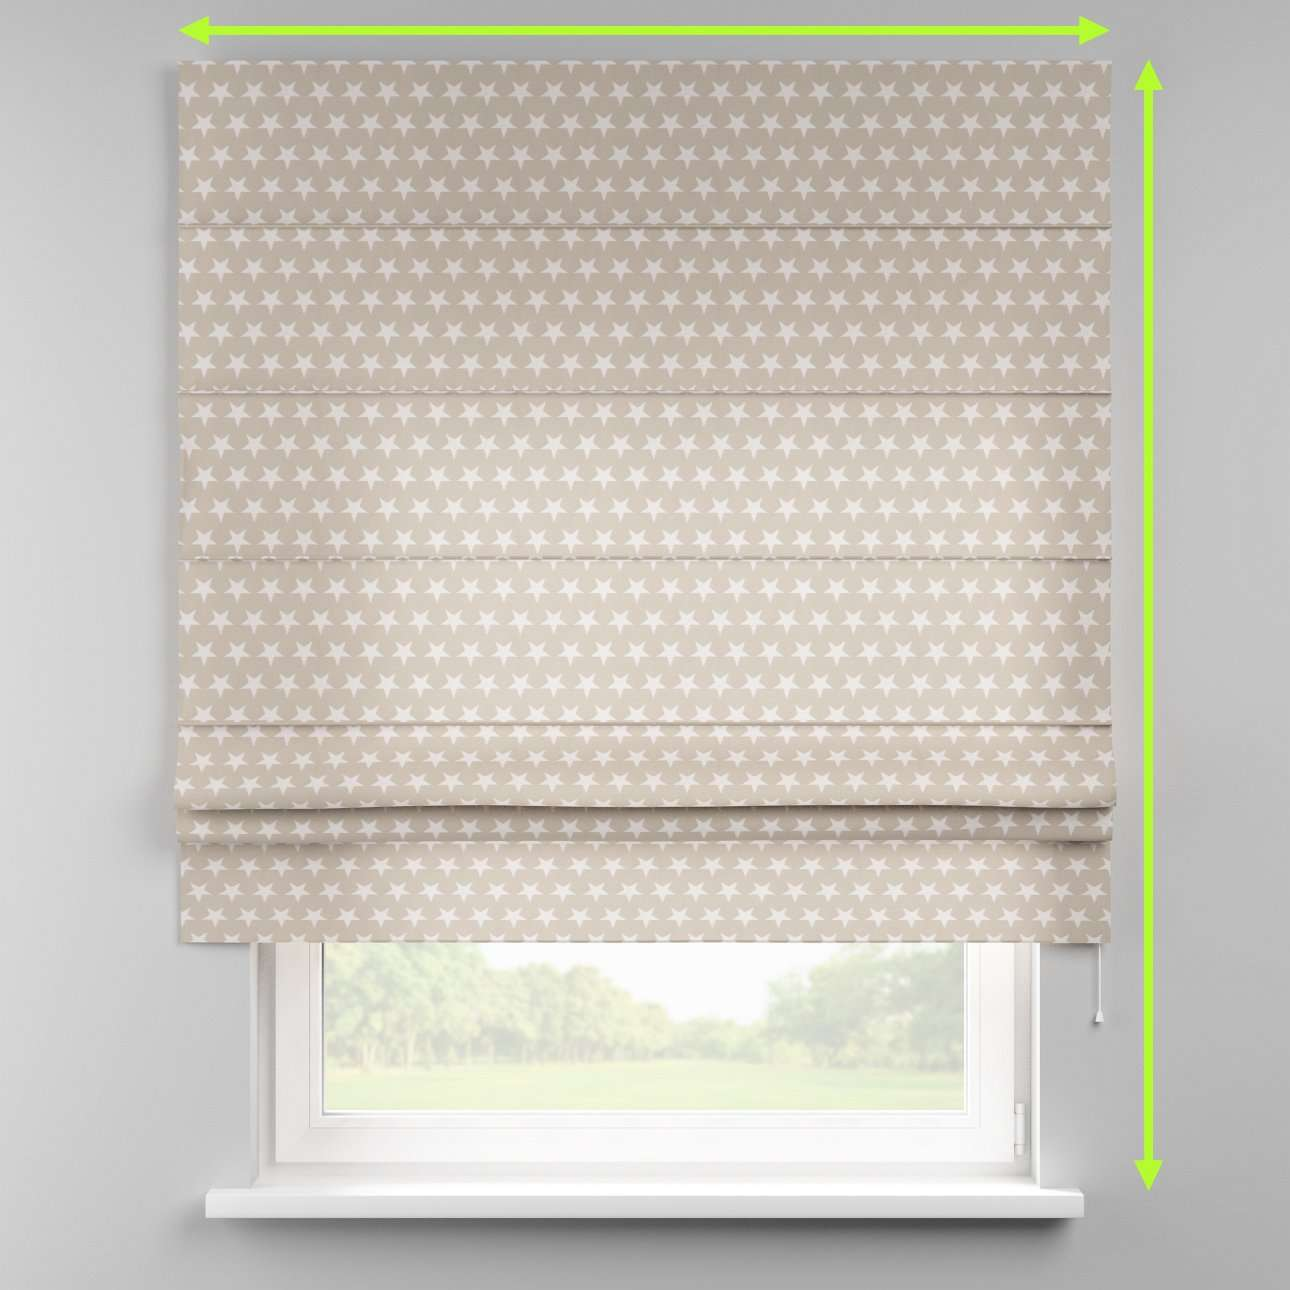 Padva roman blind  in collection Marina, fabric: 140-62